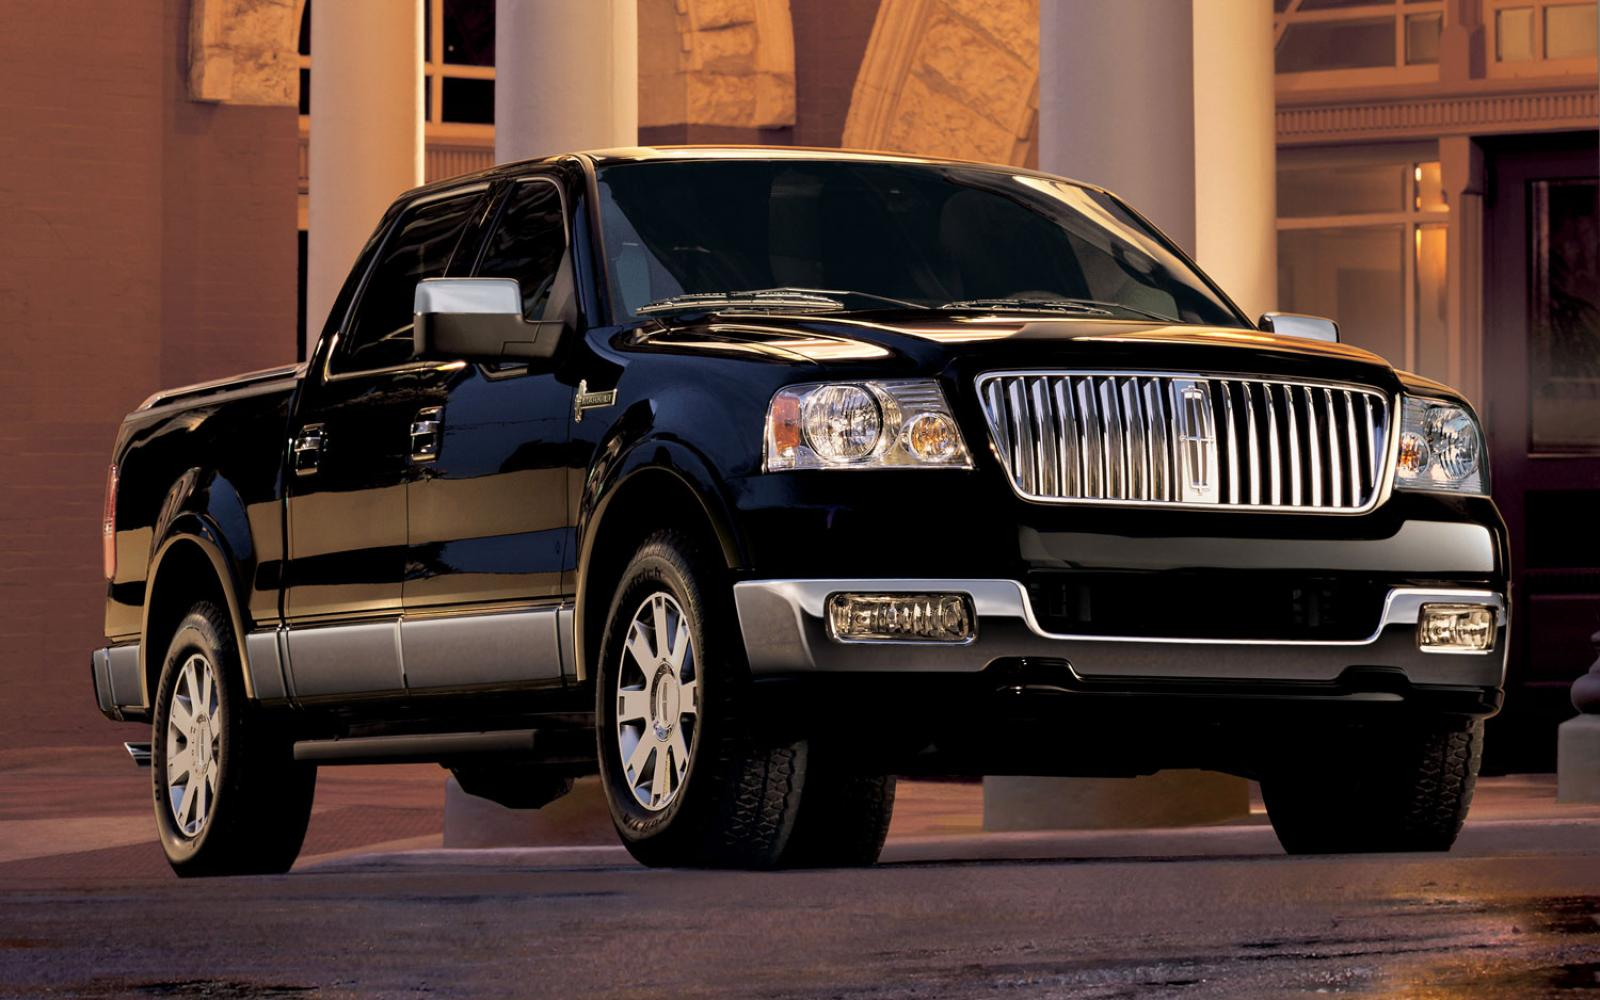 2006 lincoln mark lt information and photos zombiedrive. Black Bedroom Furniture Sets. Home Design Ideas